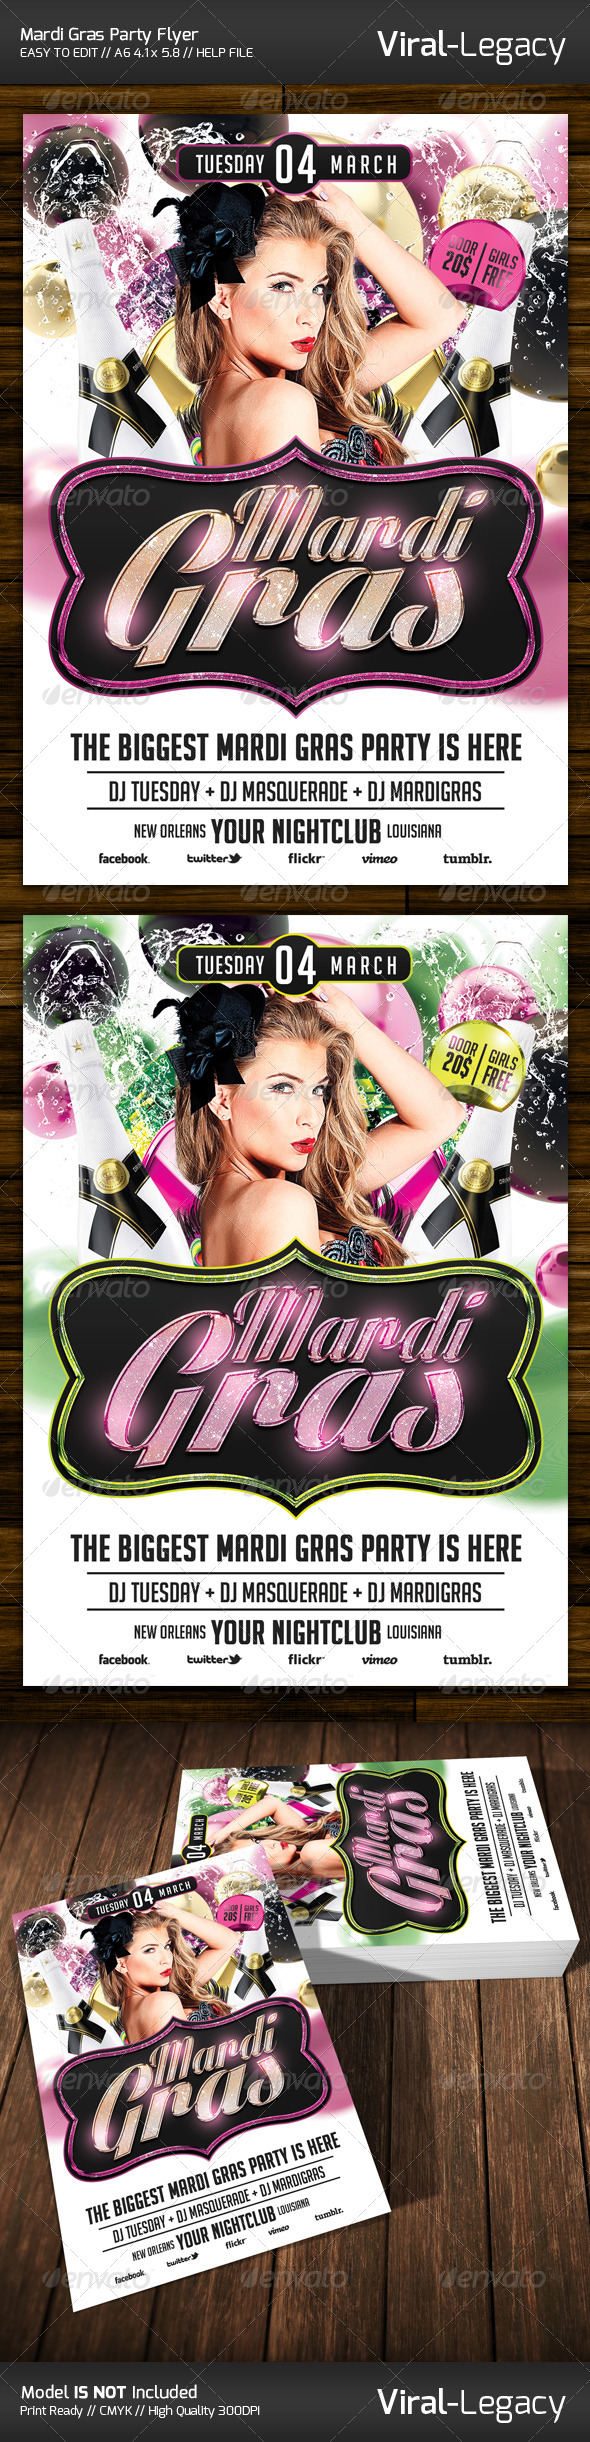 Mardi Gras Party Flyer - Flyers Print Templates